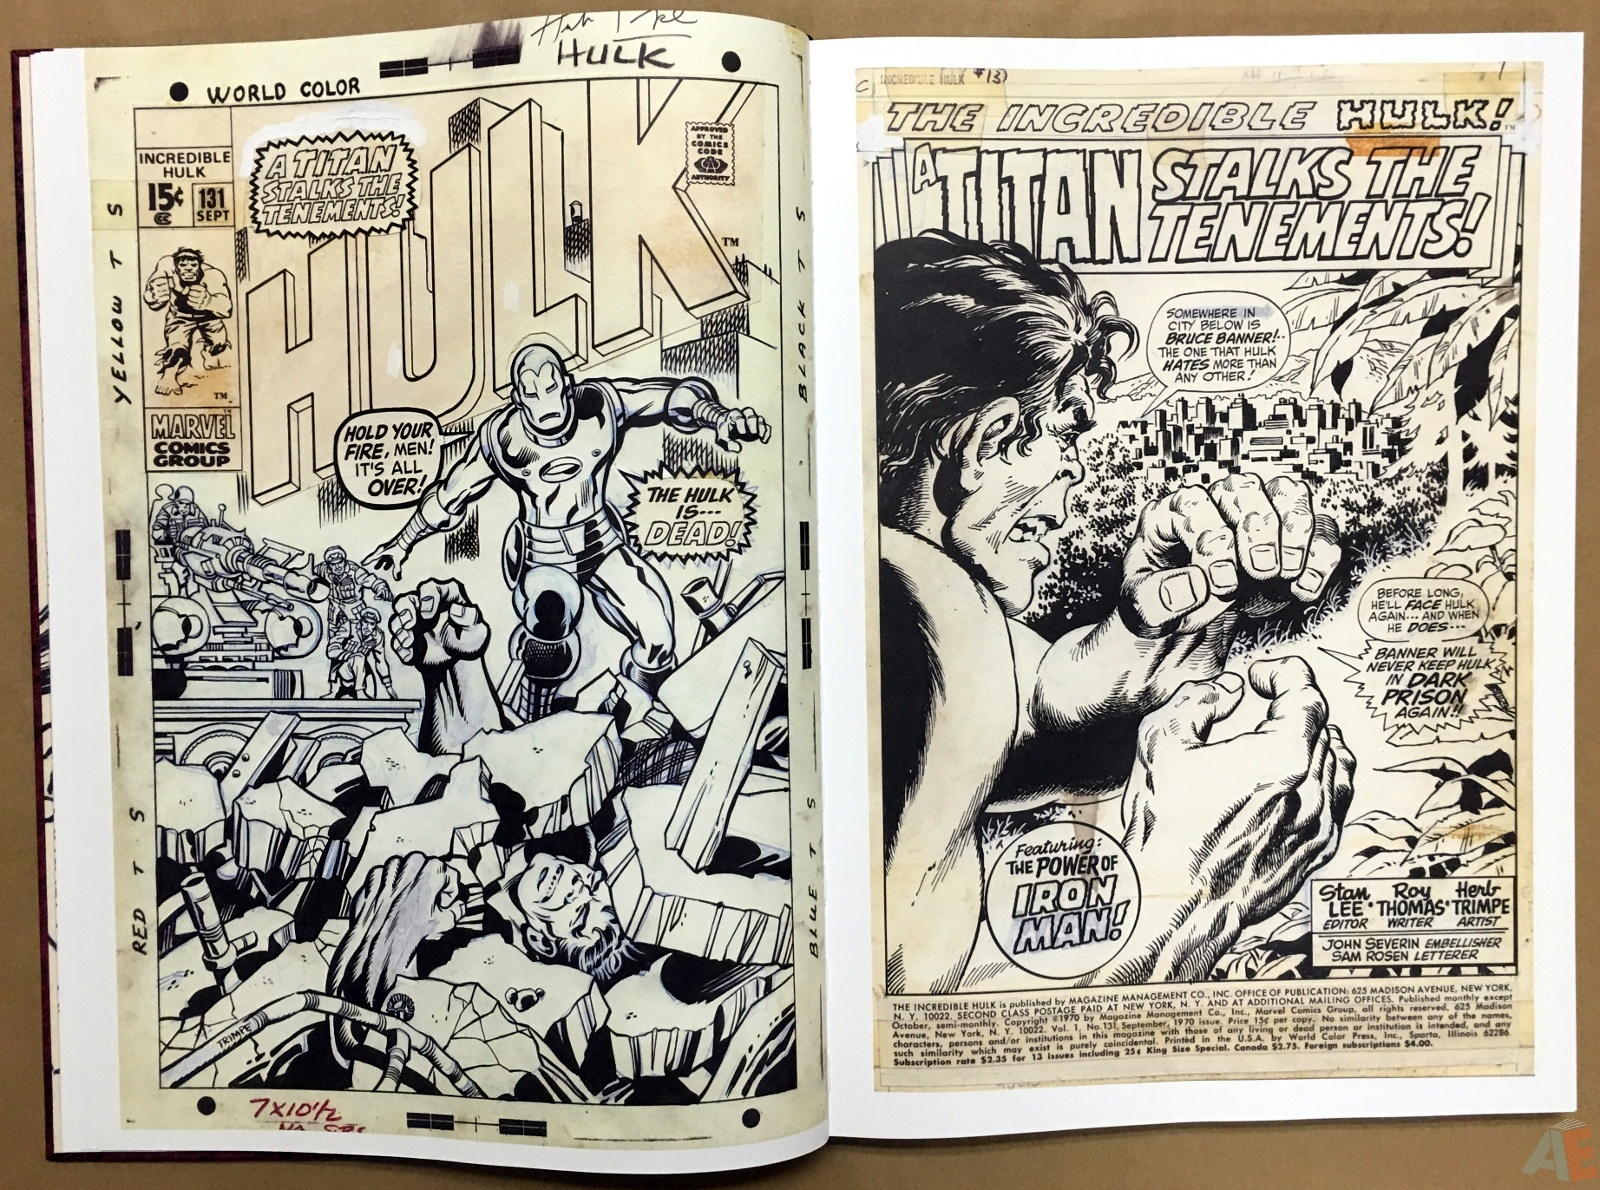 Herb Trimpe's The Incredible Hulk Artist's Edition 12